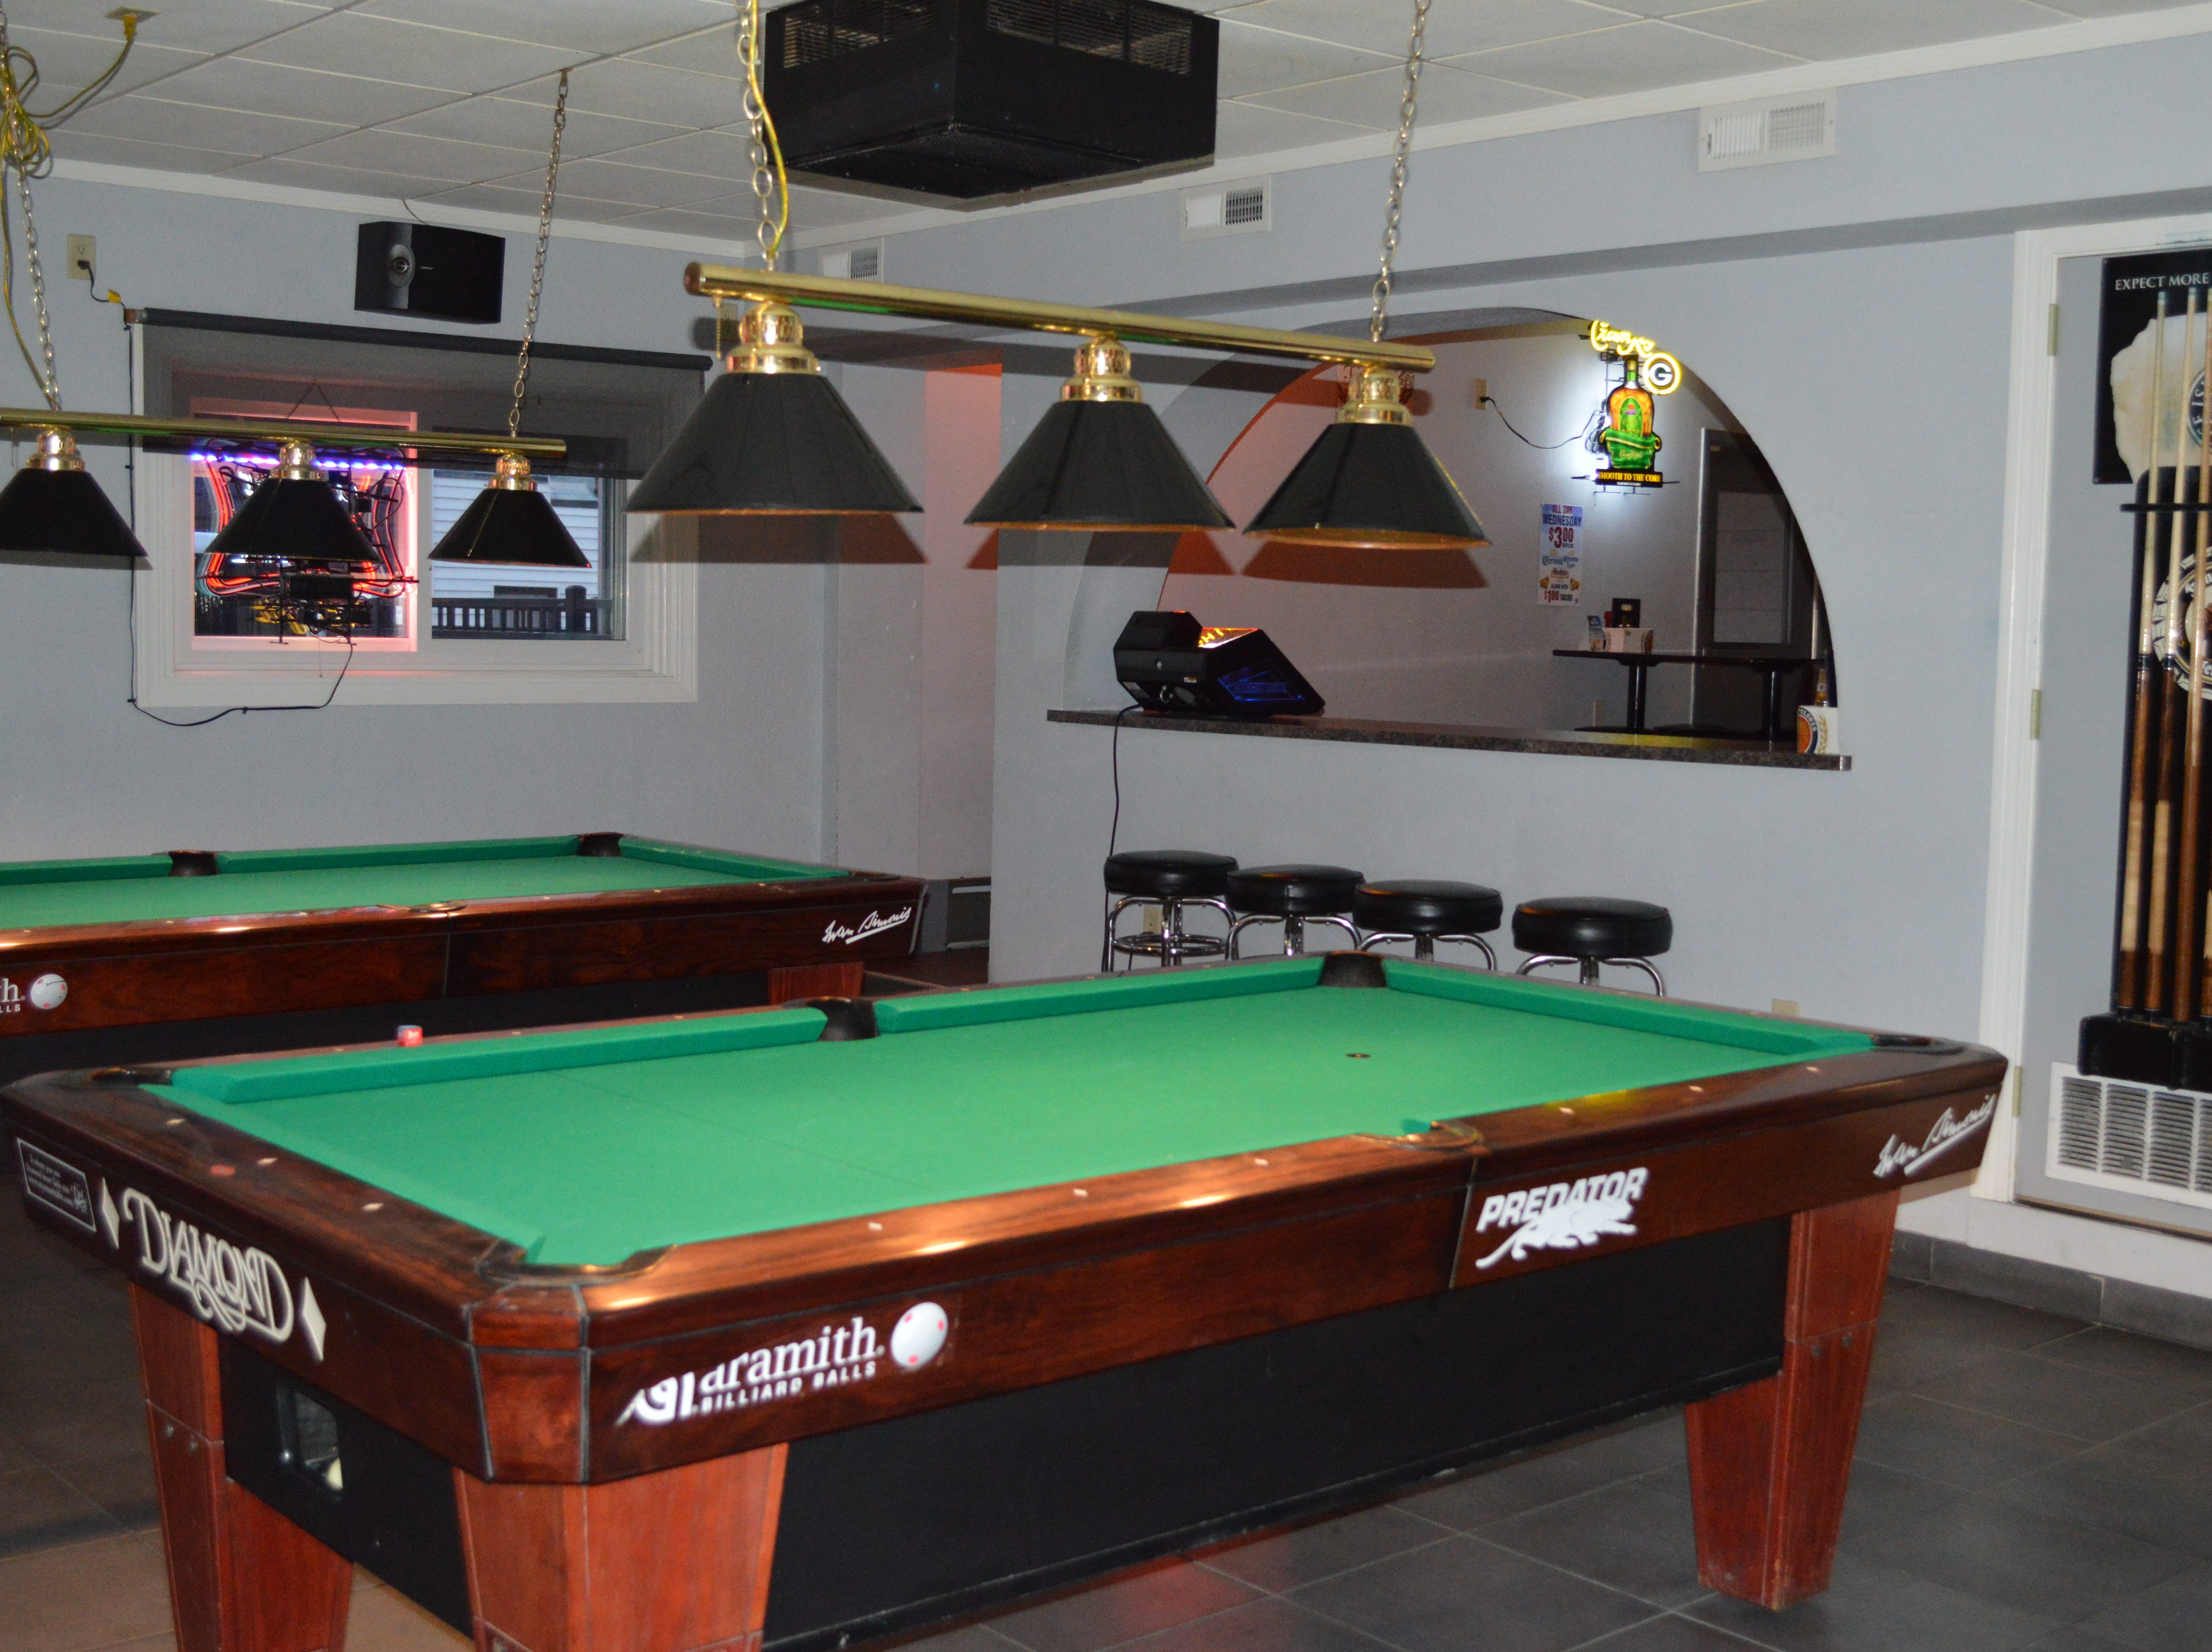 Light Palace Pub and Grill has pool tables and darts.